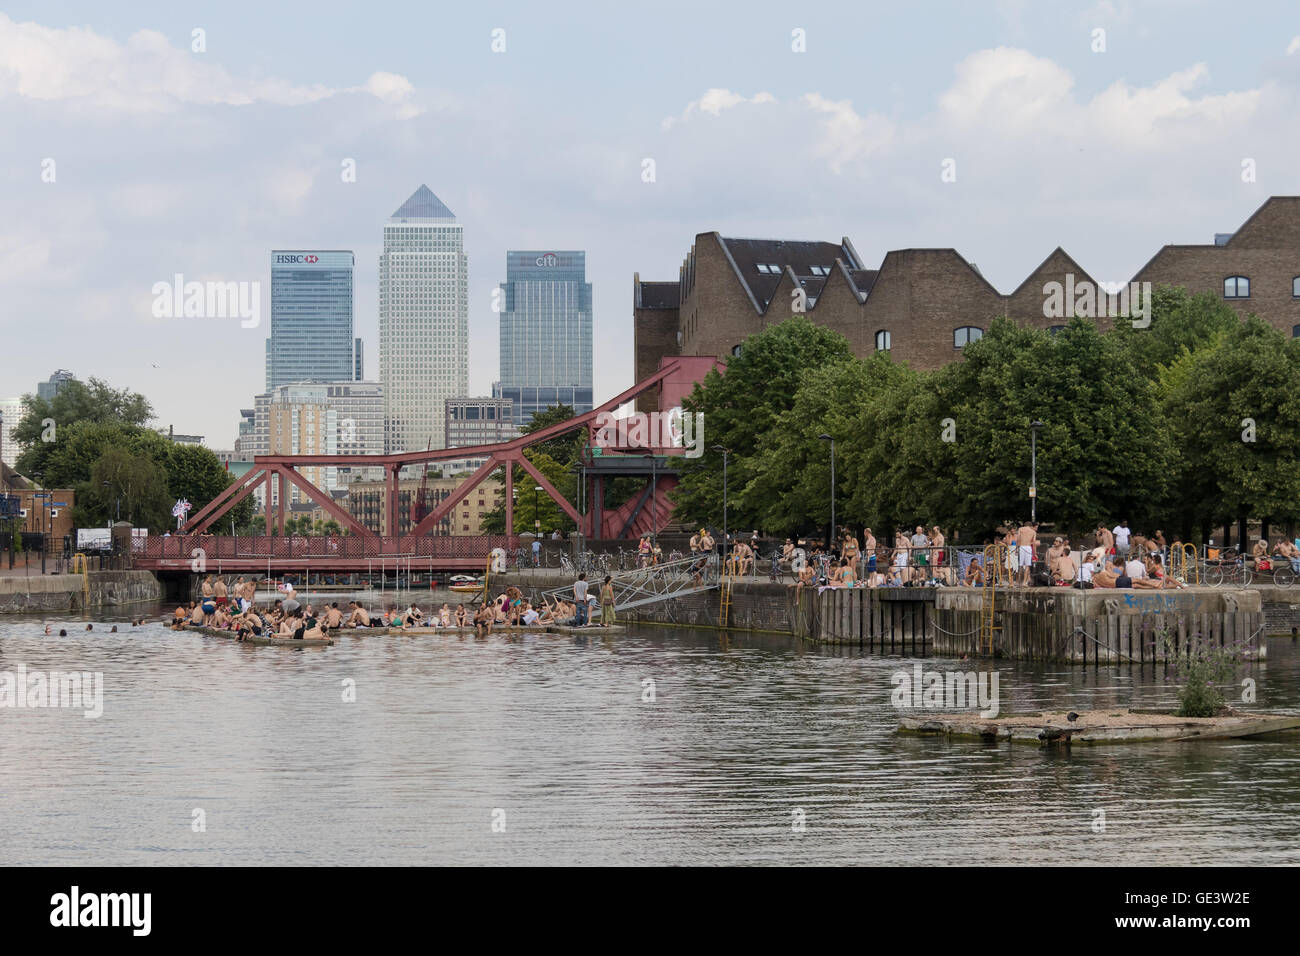 People enjoying the cold water during hot sunny weather at Shadwell Basin in east London this afternoon. People - Stock Image